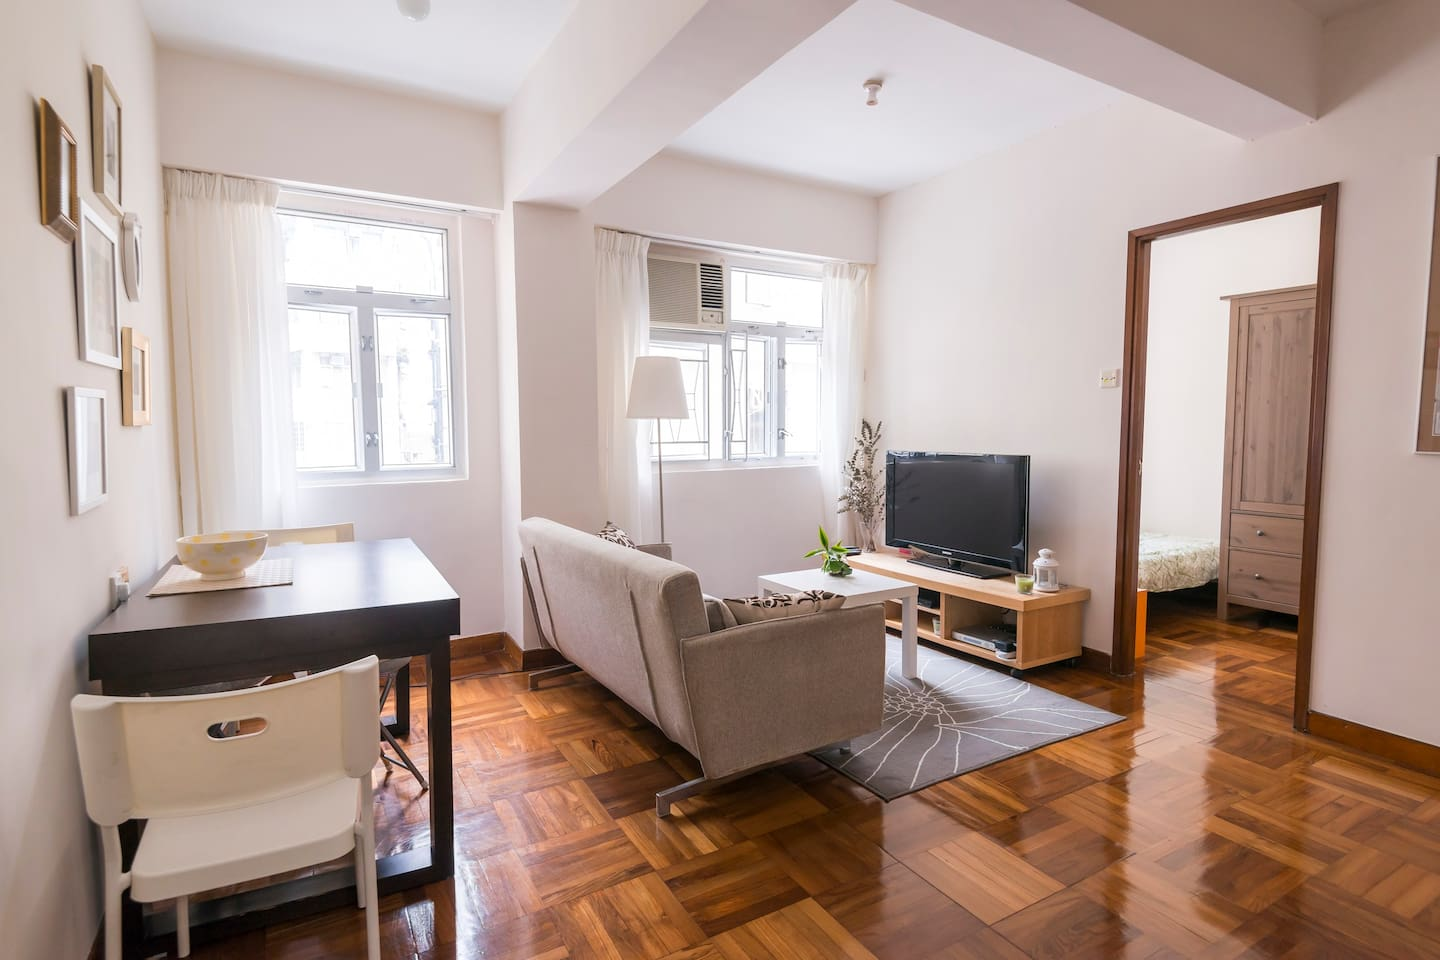 2 Bed Rooms Heart of Soho/Central